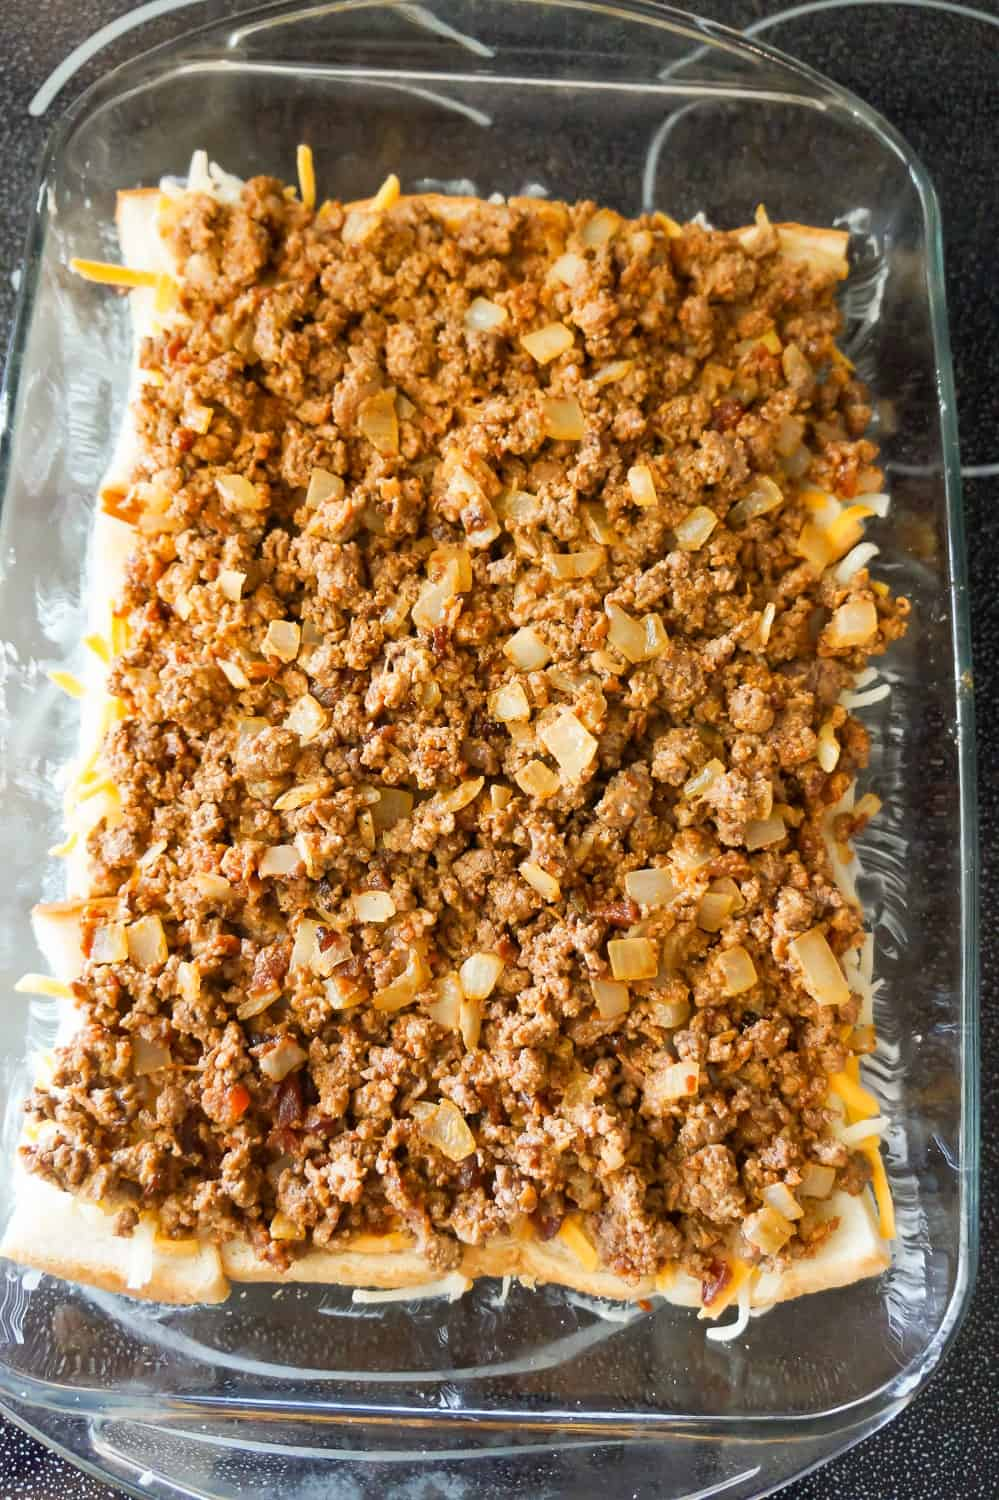 ground beef mixture in a baking dish